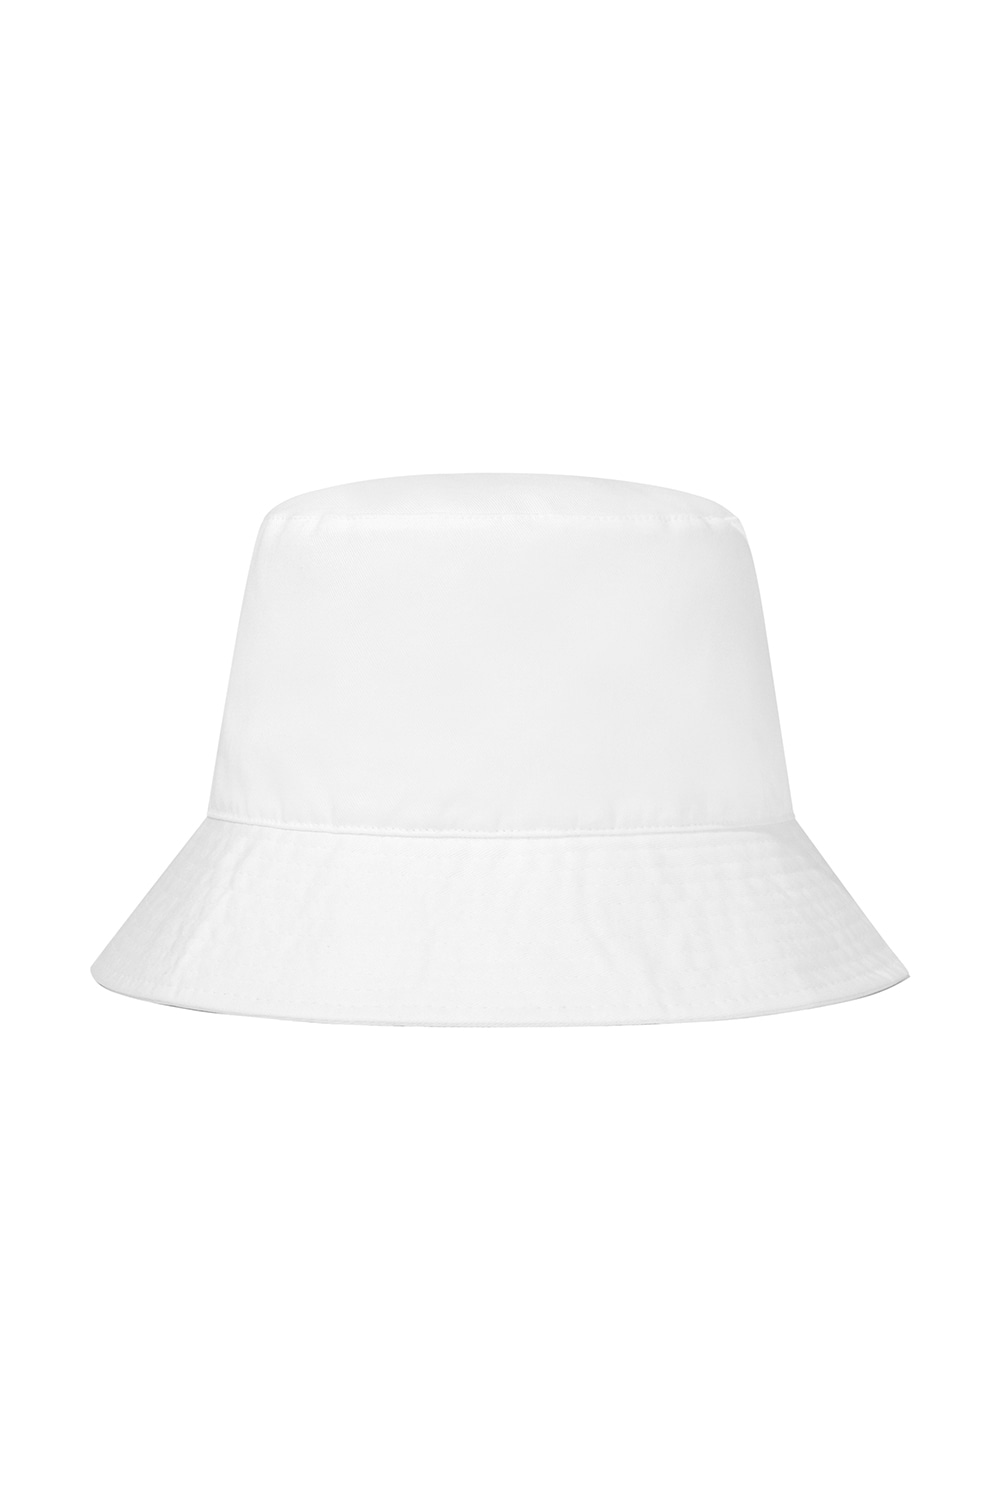 Cotton Bucket Hat Men [Ivory]